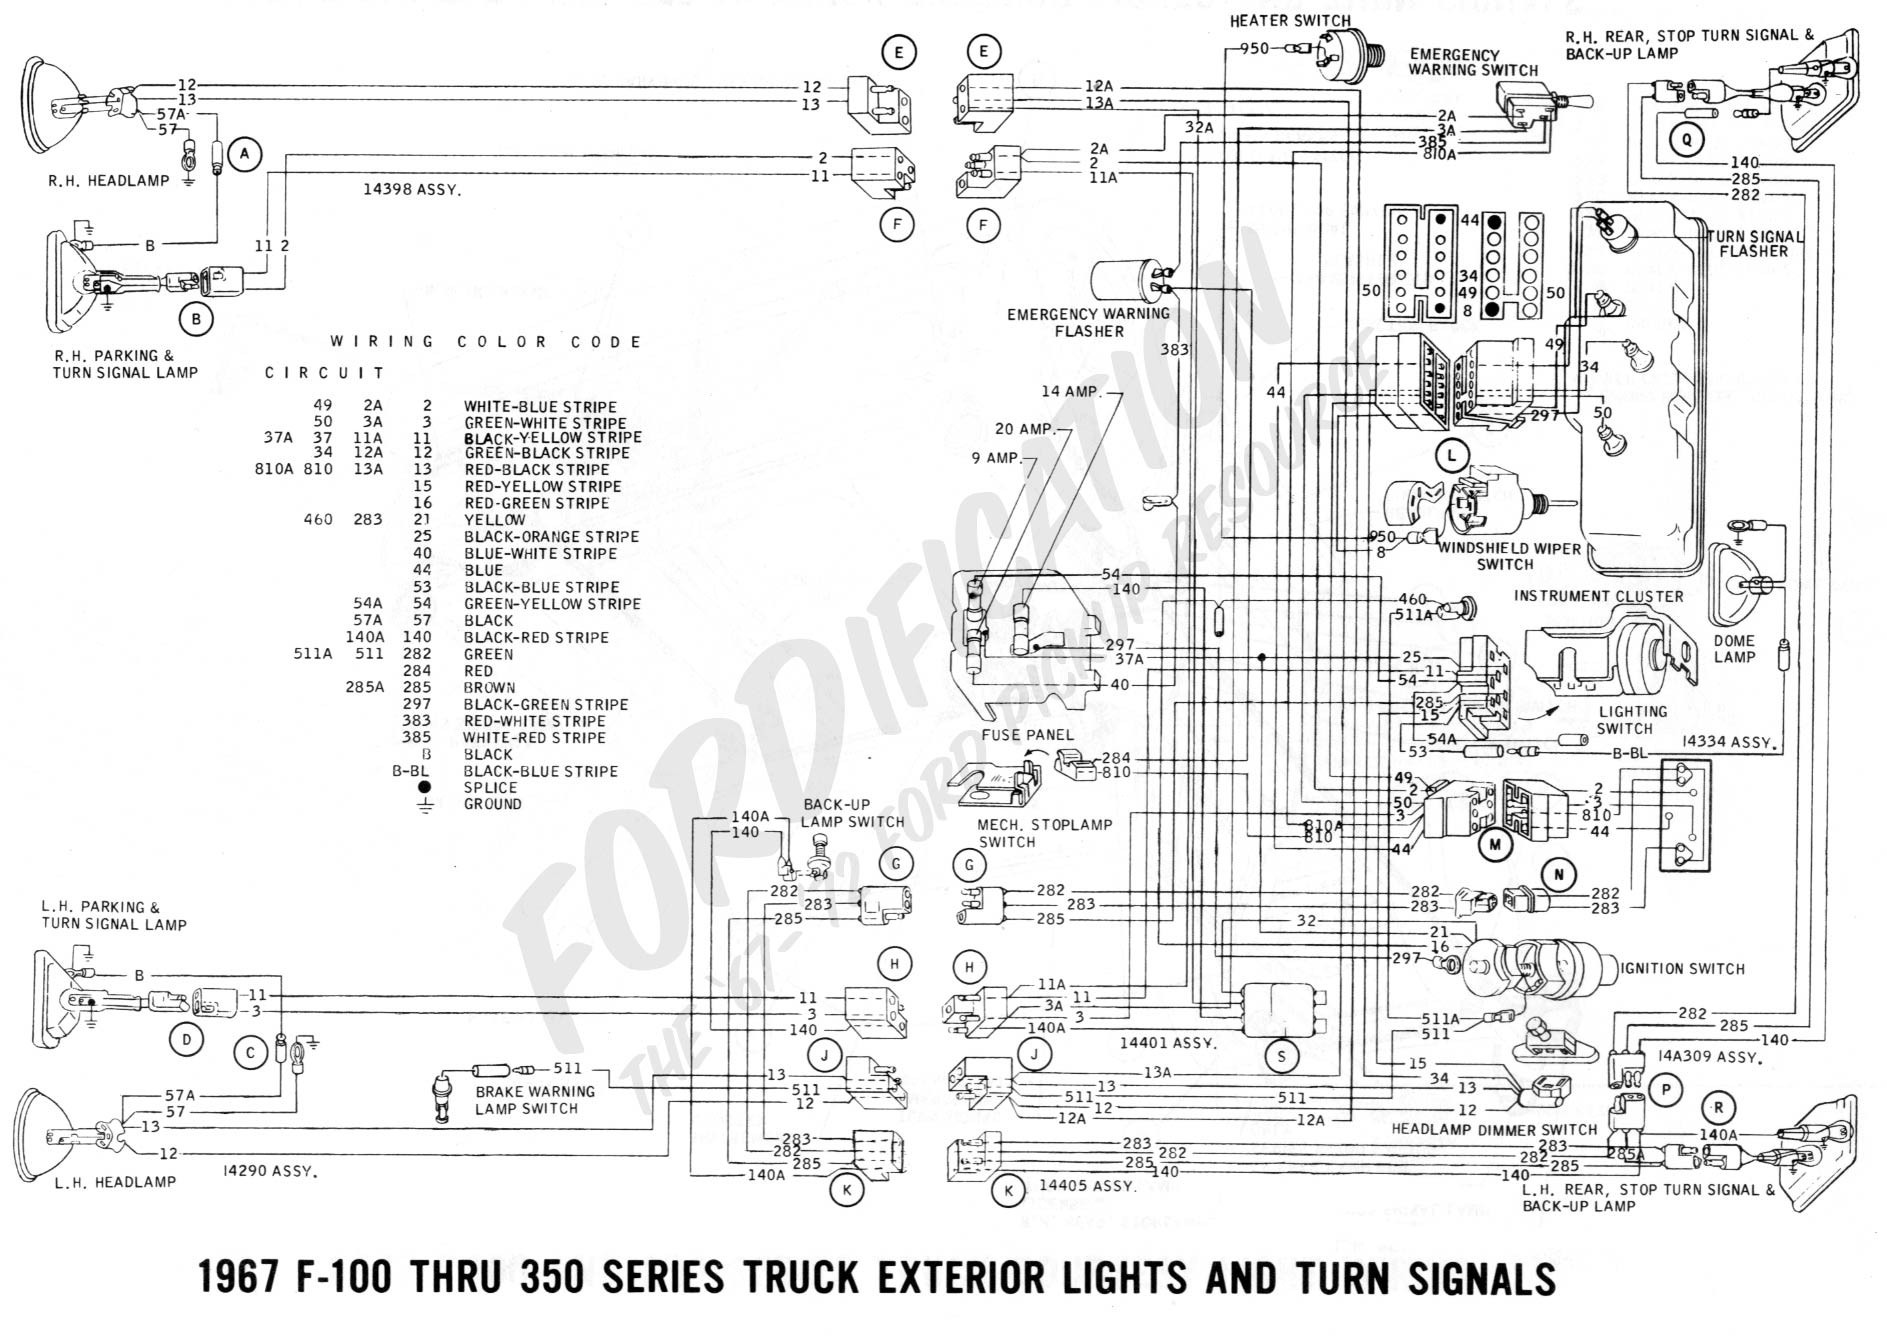 1982 Peterbilt 356 Turn Signal Wiring Diagram 2007 Download Rh Wiringdiagramblog Today 1988 379 Light